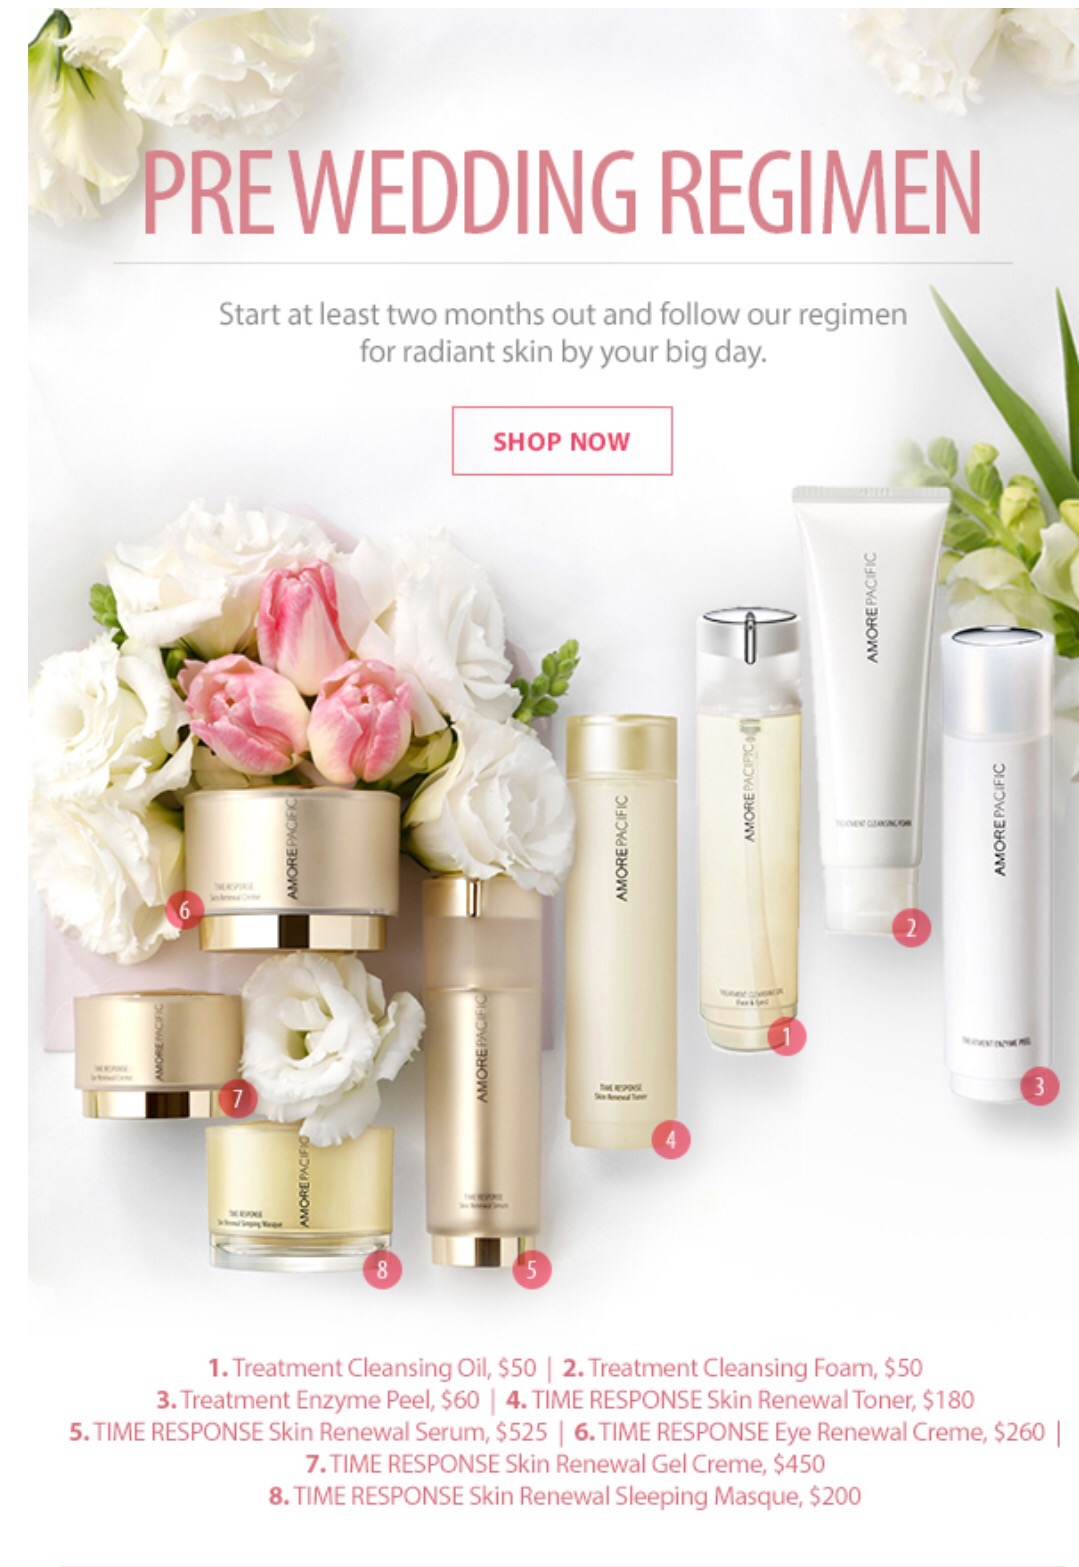 Bridal Beauty Prep w/ AmorePacific